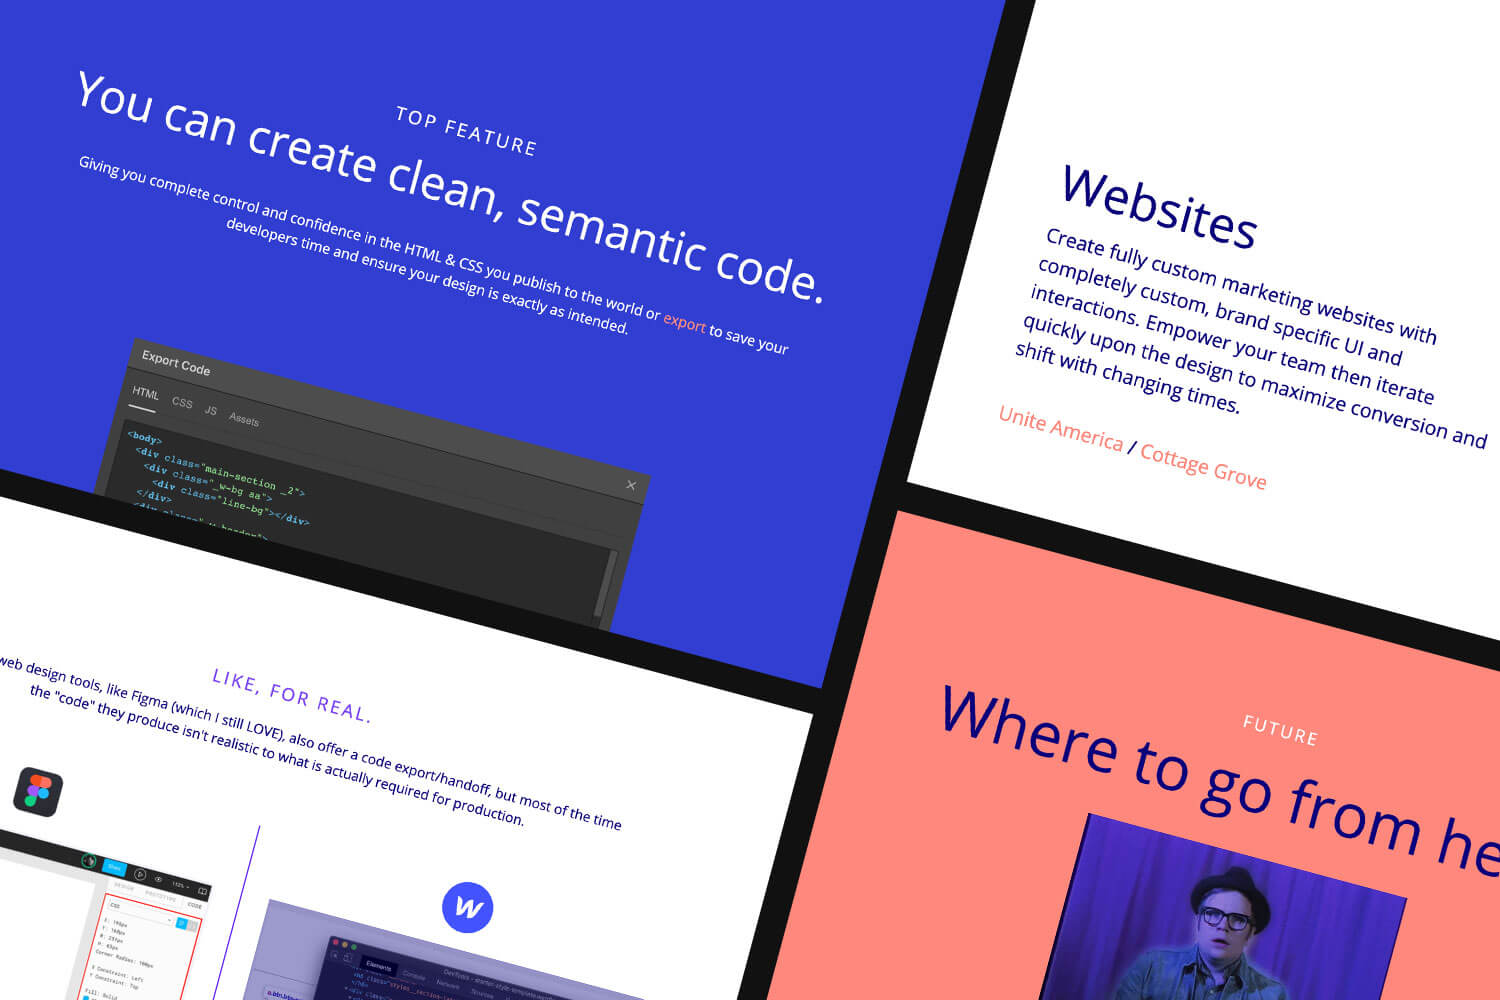 Examples slides from presentation like Webflow clean code and where to go from here